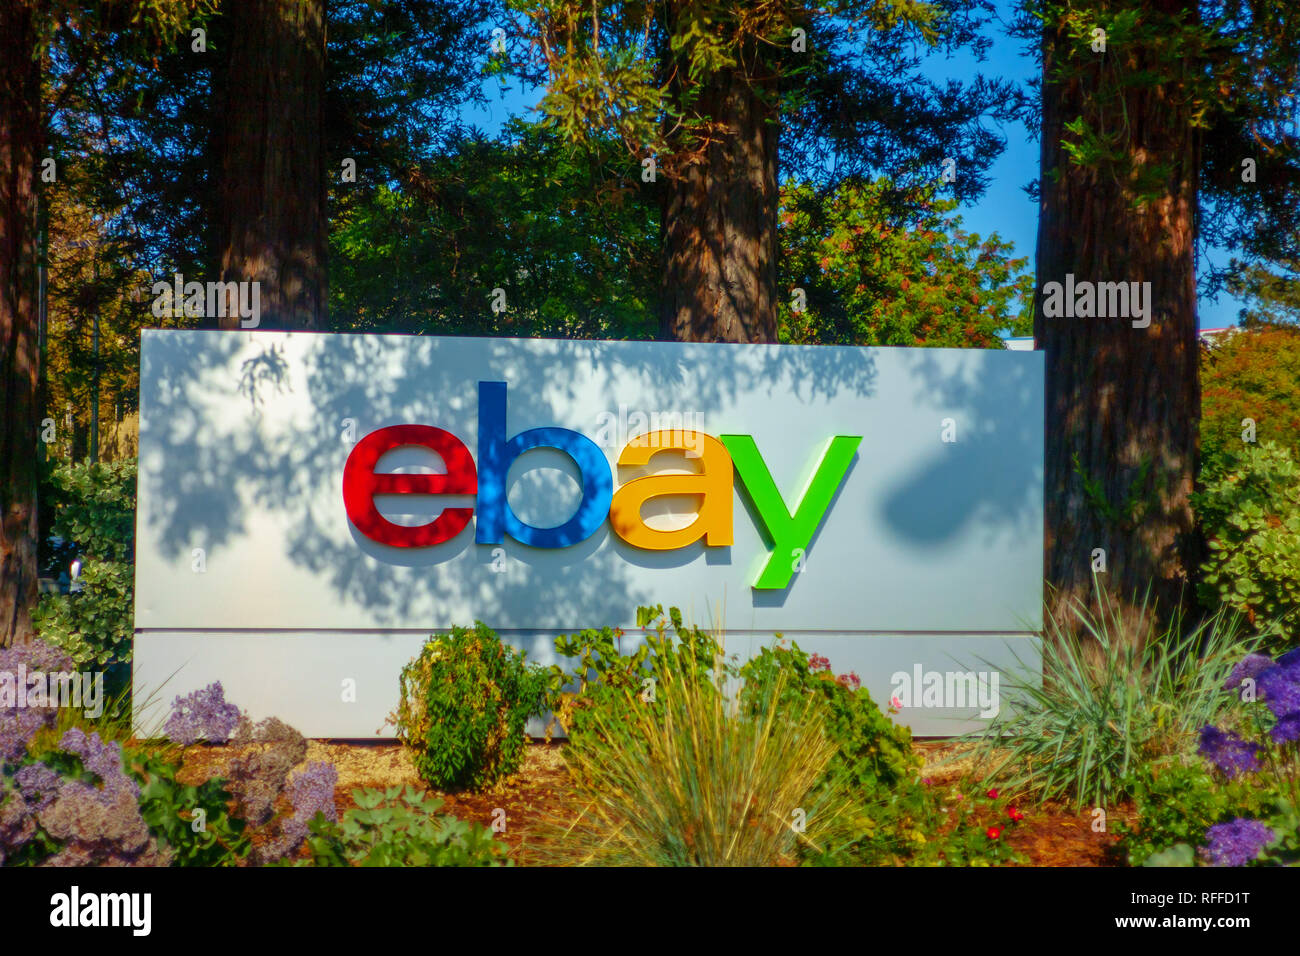 Ebay Outdoor Logo At Company Headquarters In Silicone Valley Stock Photo Alamy